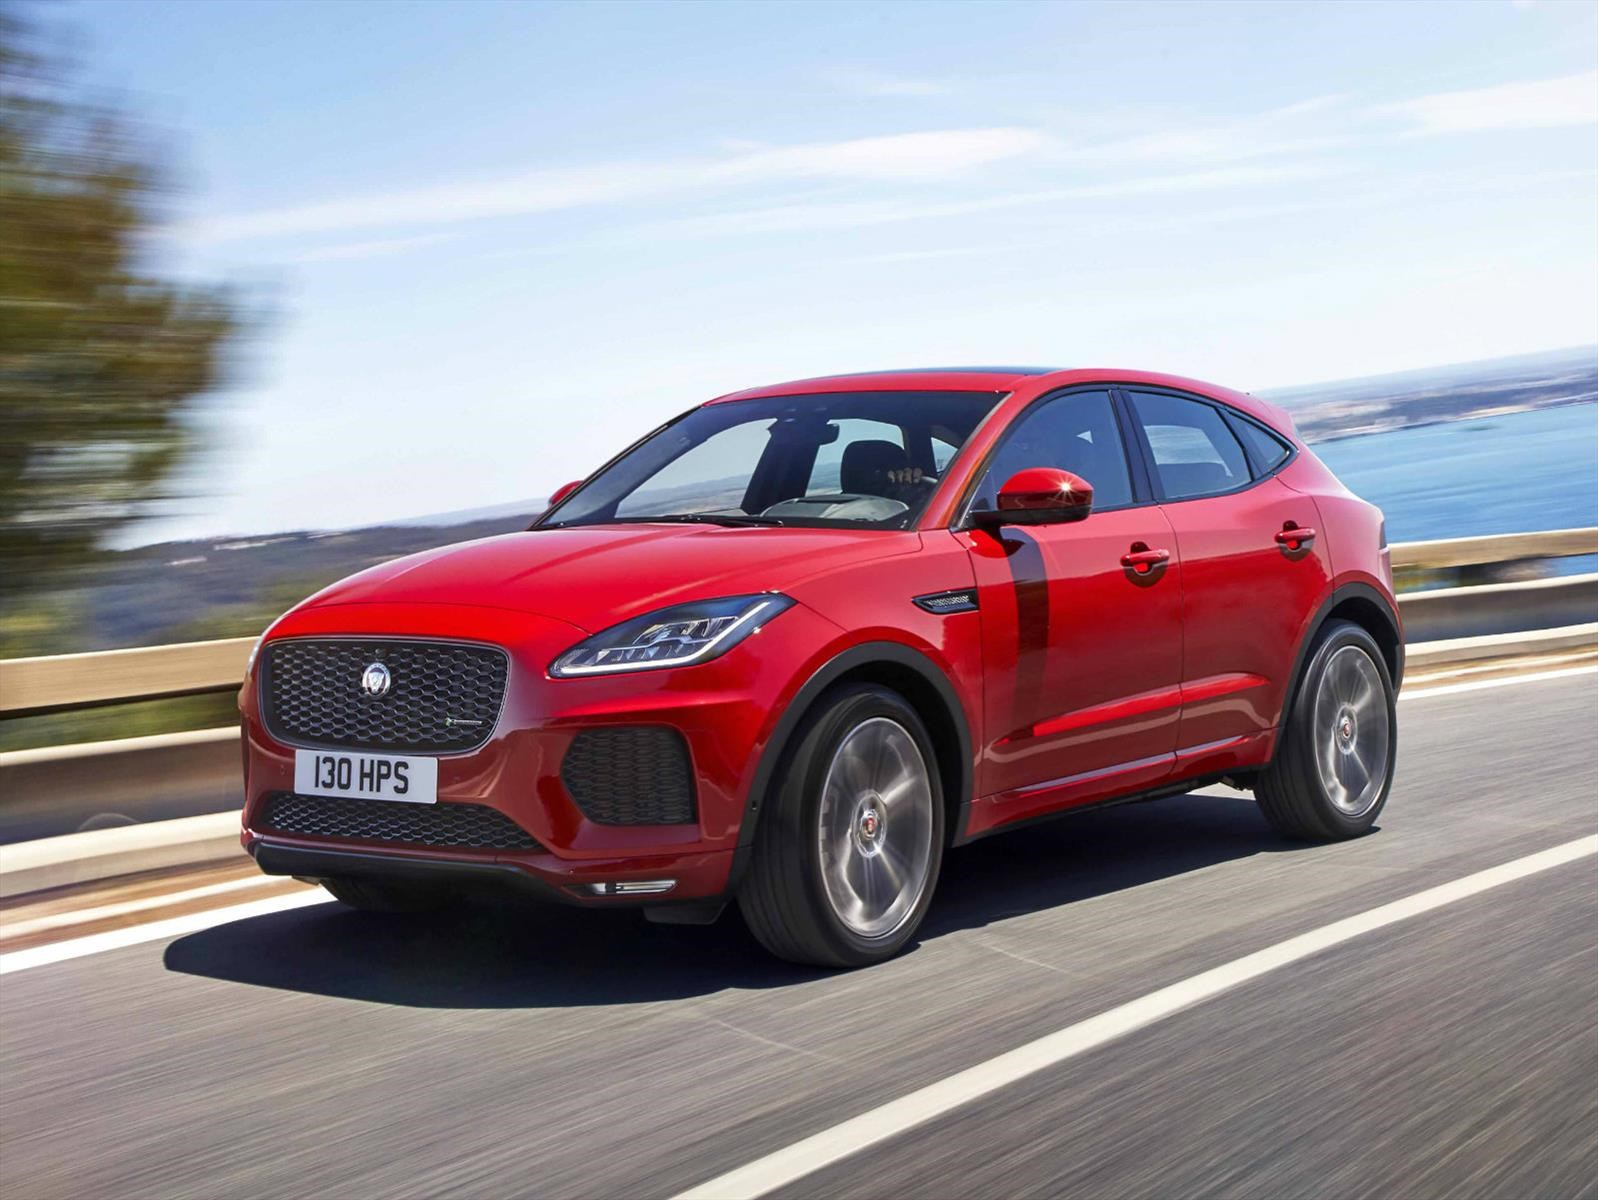 Video: Jaguar E-Pace 2018, un debut en 270 grados